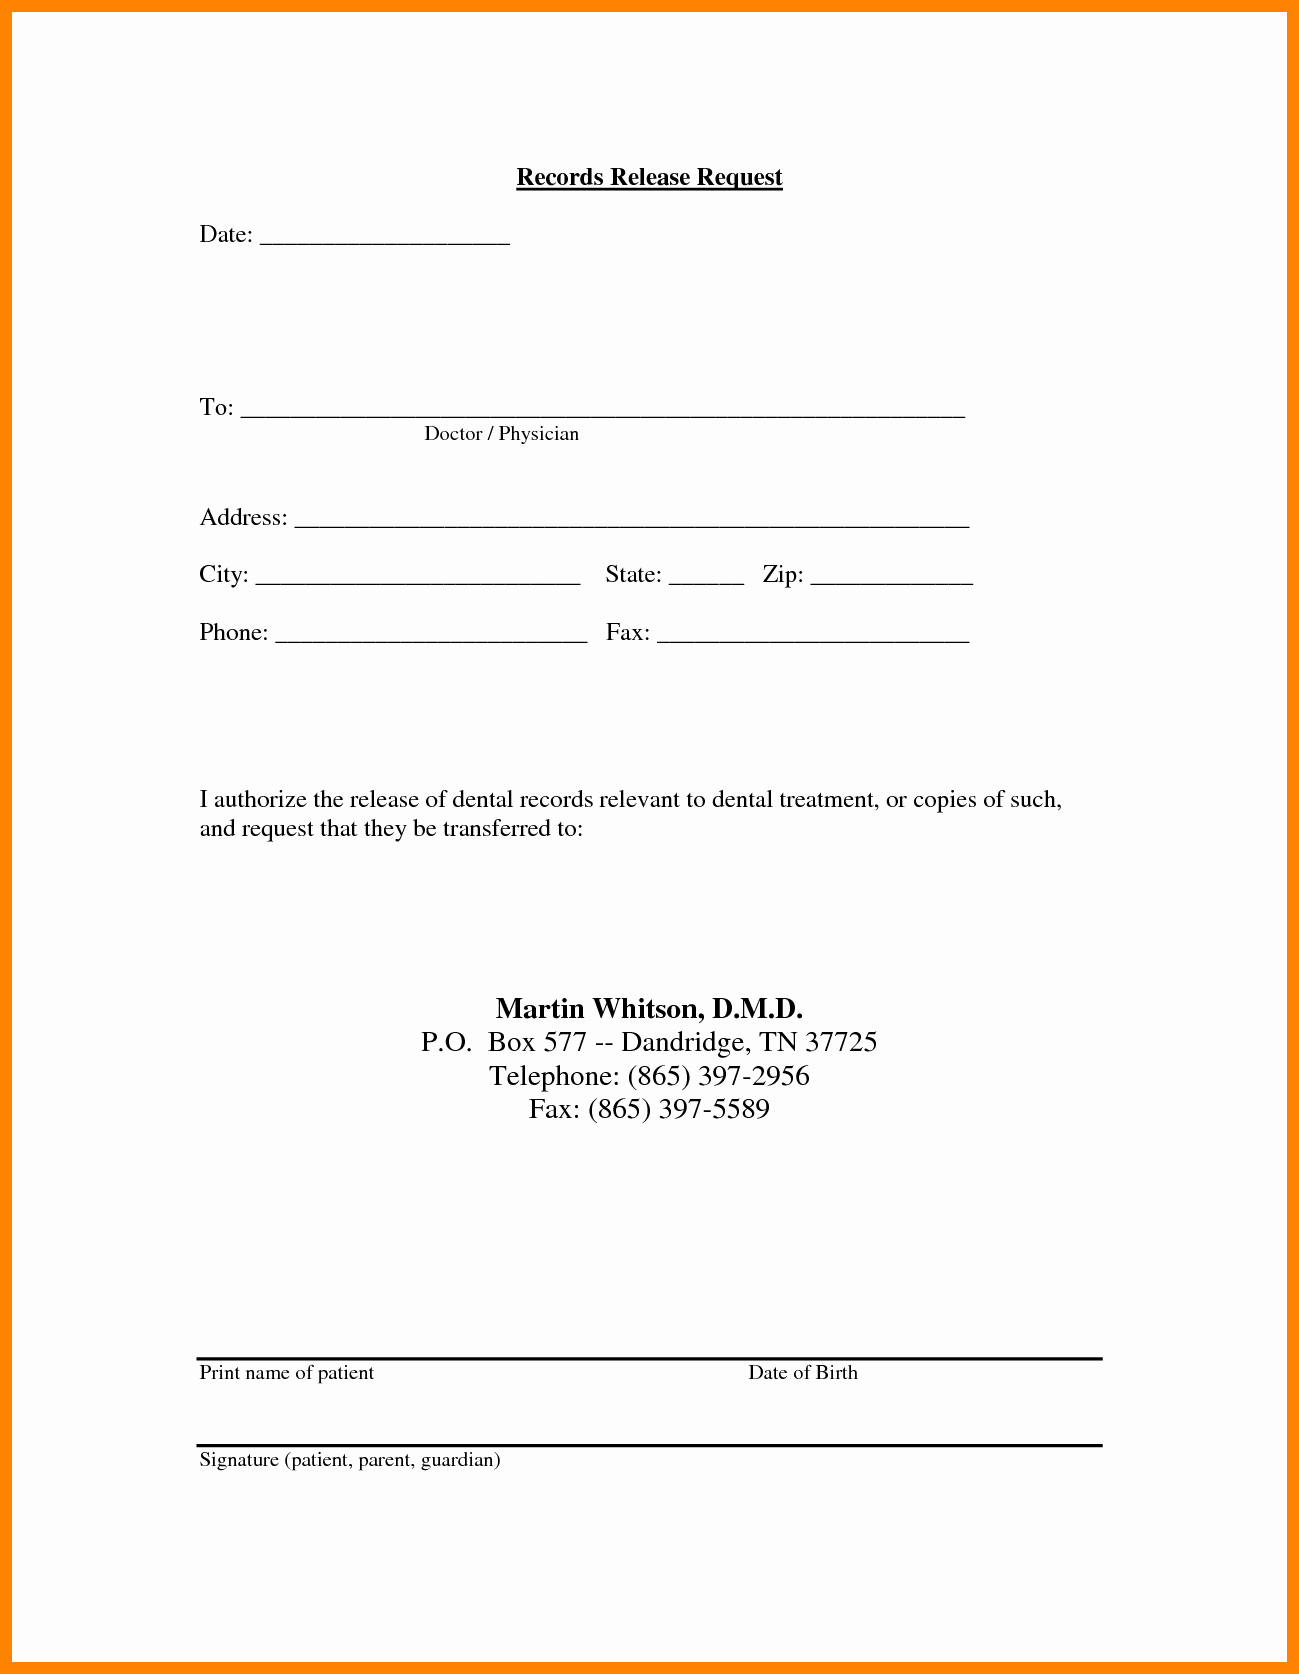 Medical Records Release Letter Template - Hipaa Release form Template Lovely Medical Records Release forms